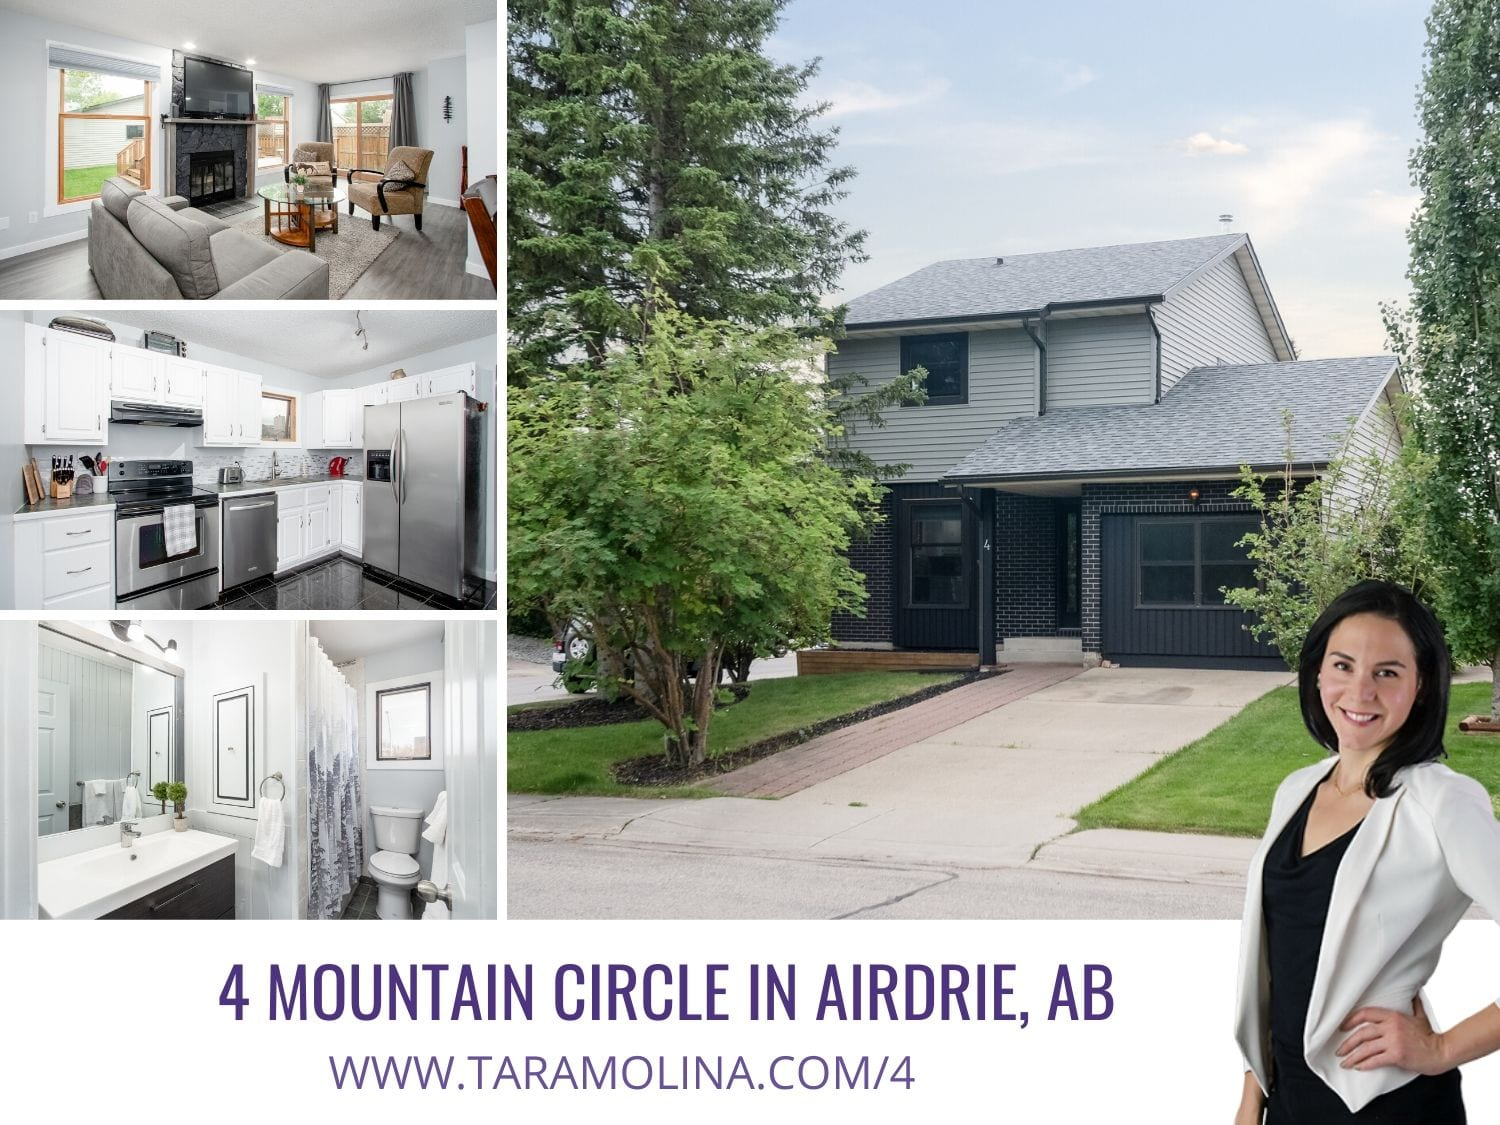 4 Mountain Circle in Airdrie, AB - Web Thumb